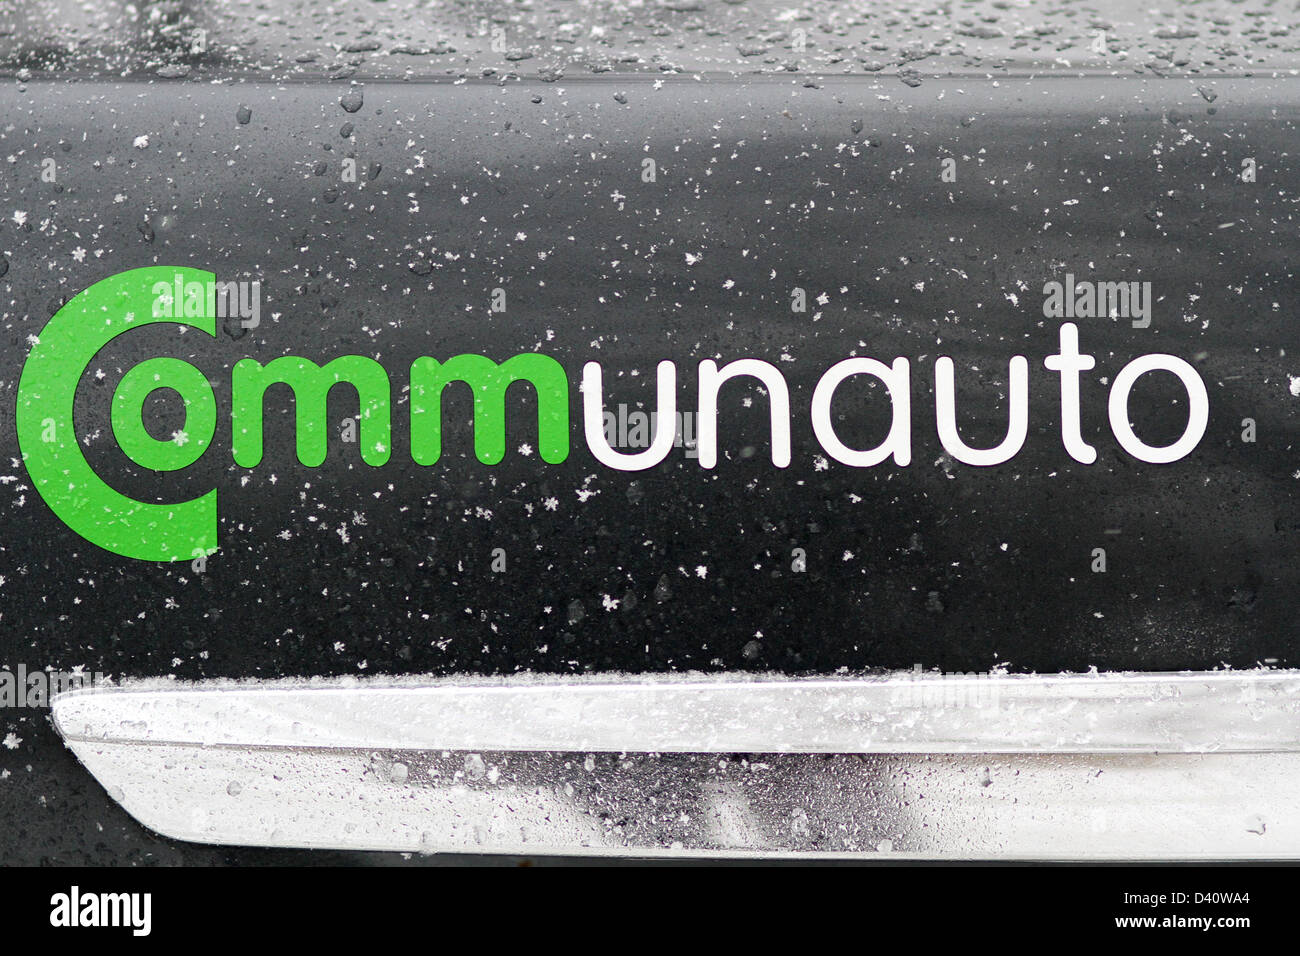 Communauto is a carsharing company based in Montreal, Quebec. - Stock Image